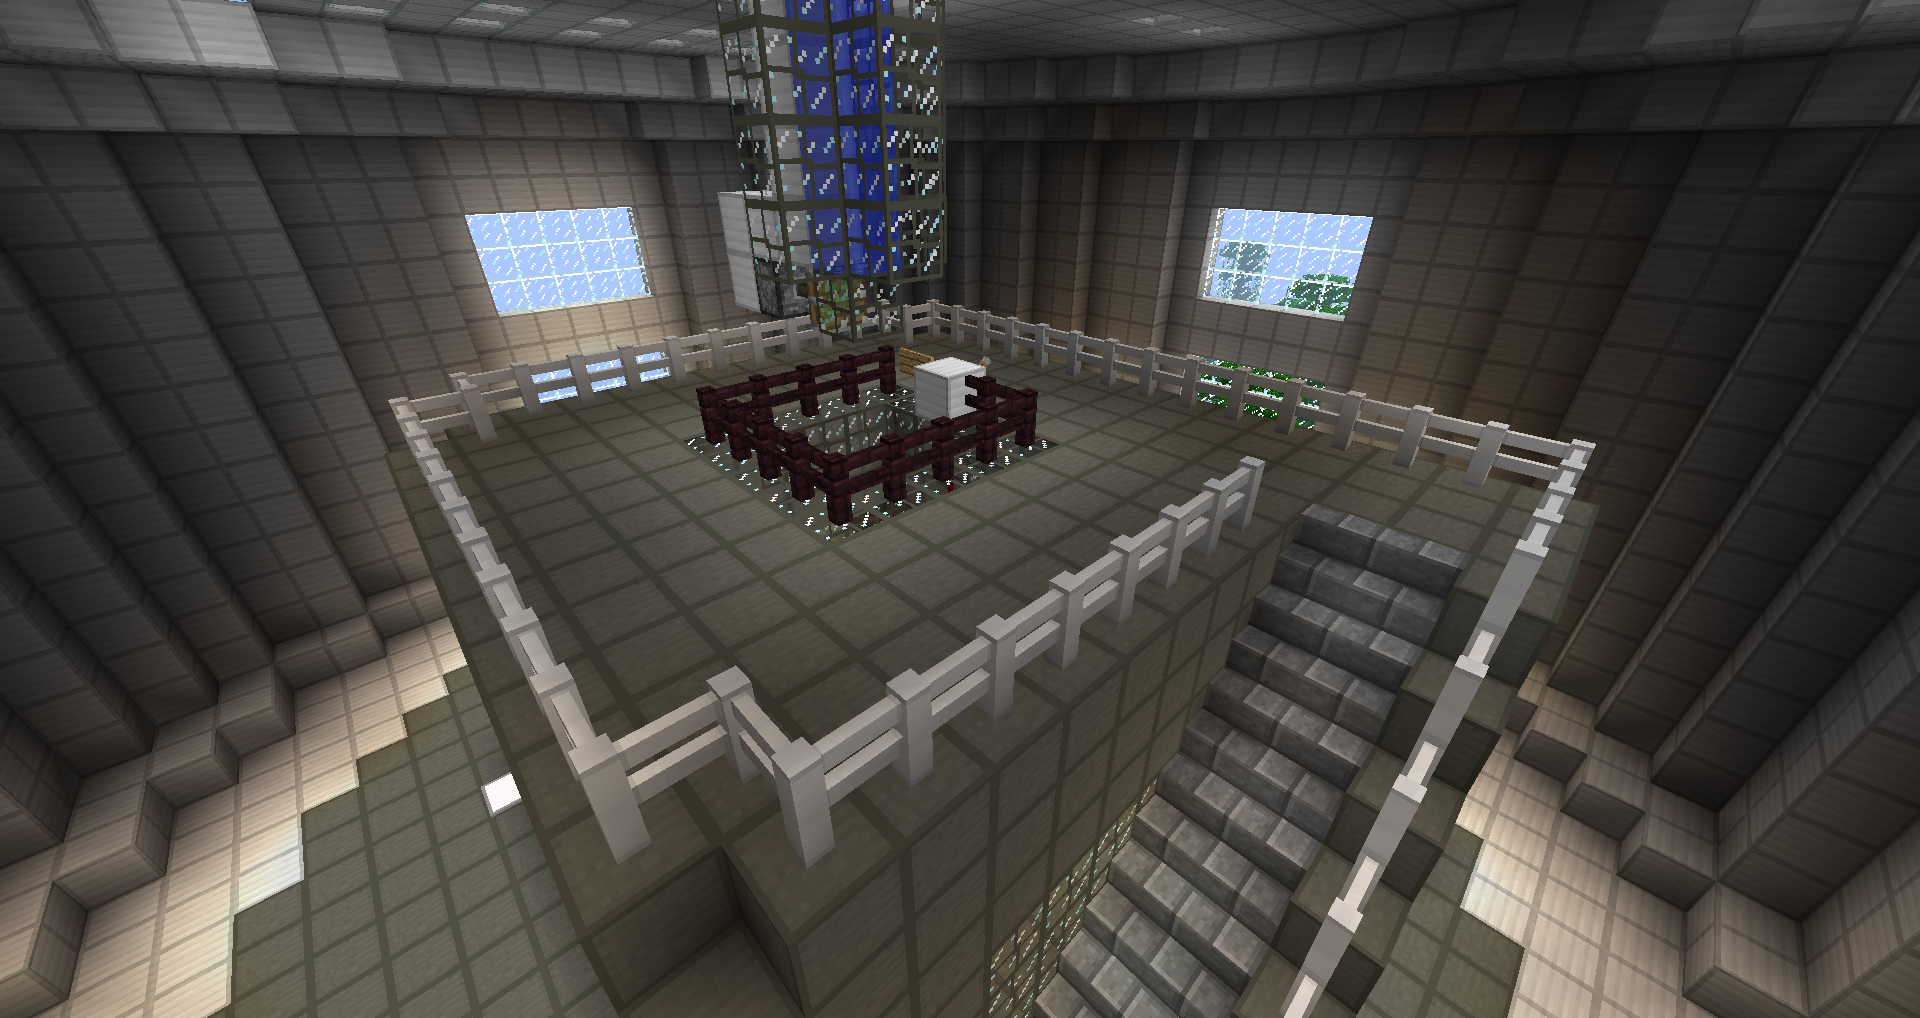 Top of reactor chamber with emergency water supply.